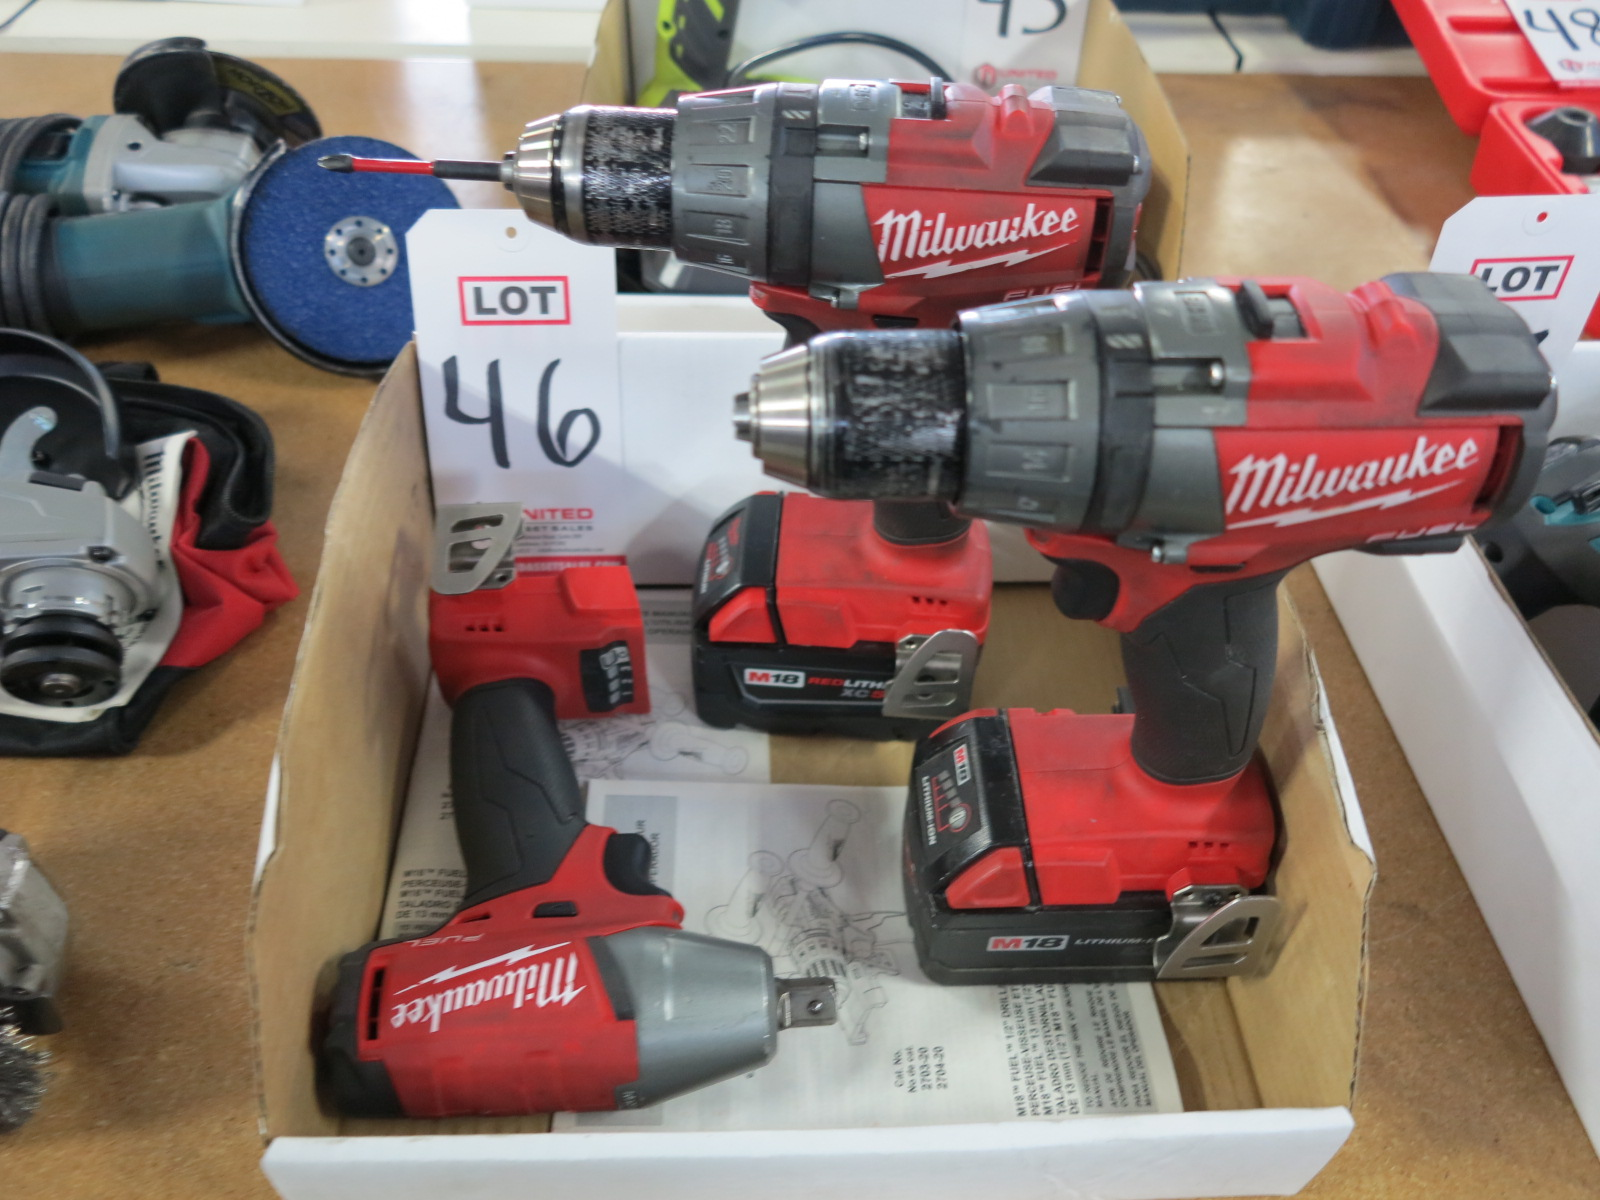 """Lot 46 - LOT- (2) MILWAUKEE 1/2"""" DRILLS, CAT. NO. 2703-20, BOTH W/ M18 EXTENDED BATTERIES AND (1) MILWAUKEE"""